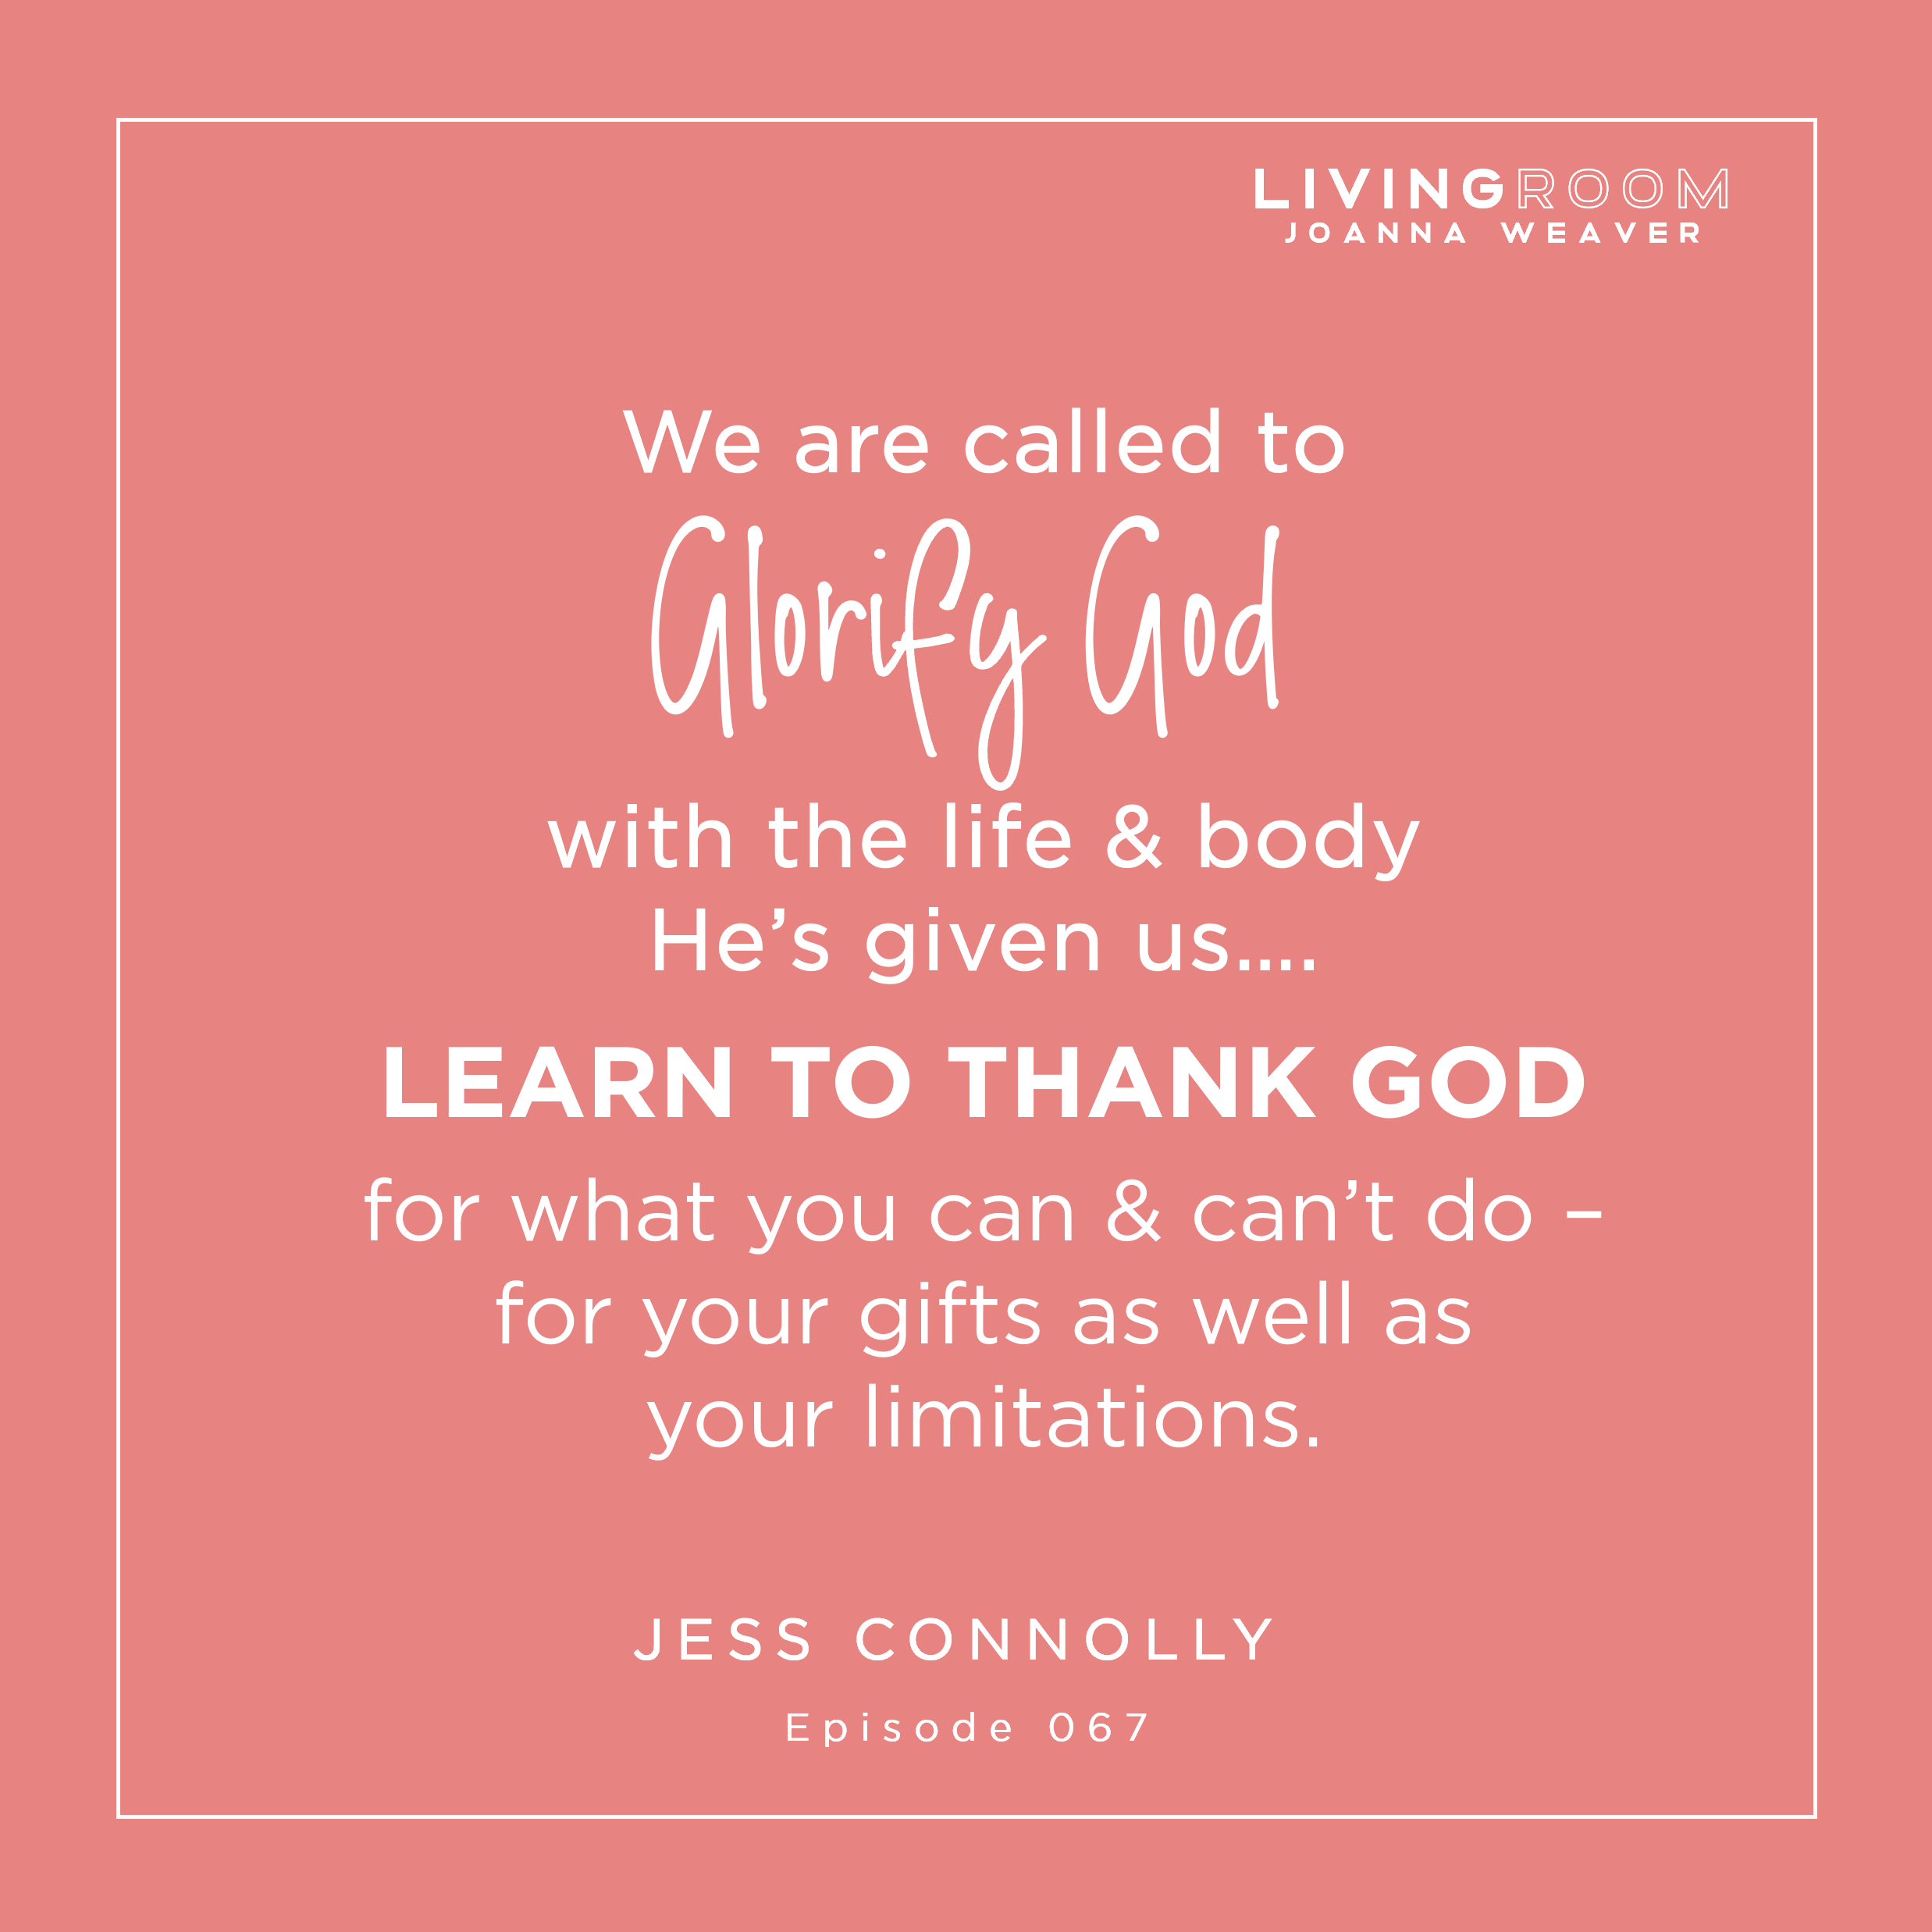 """""""We are called to glorify God with the life and body He's given us...Learn to thank God for you can and can't do - for your gifts as well as your limitations."""" Jess Connolly - The Living Room Podcast - Episdoe 067"""